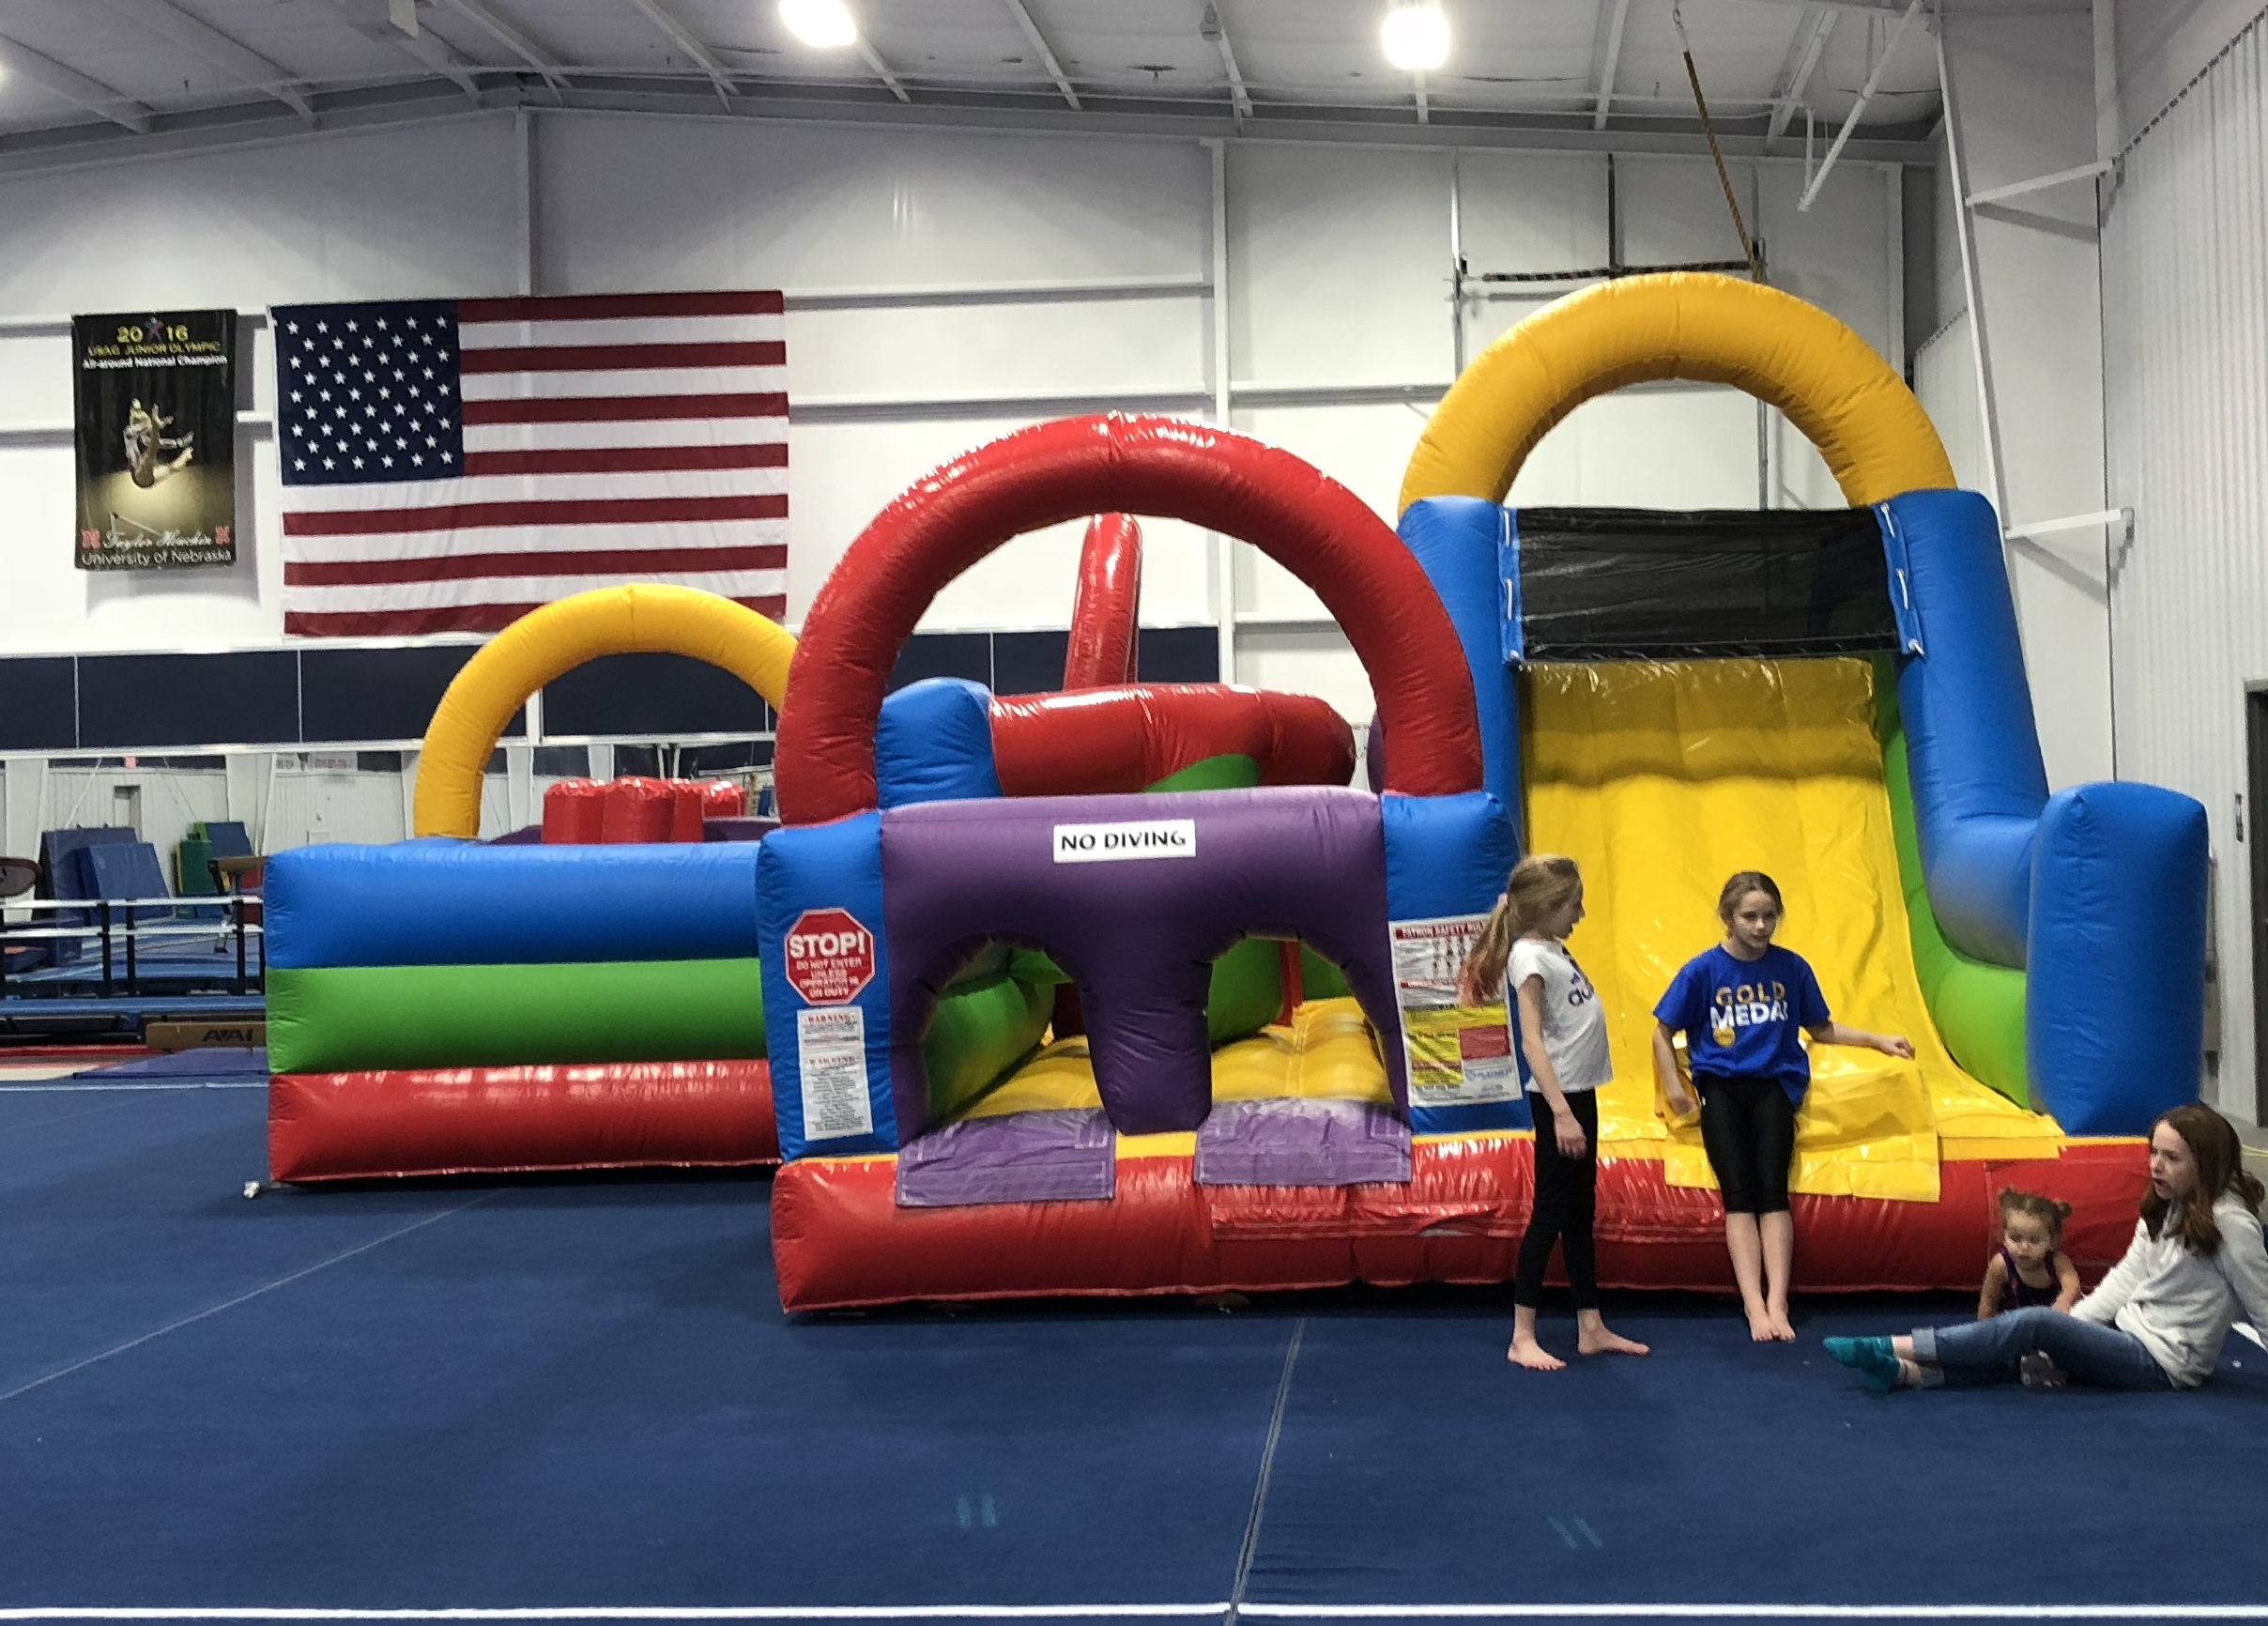 Children play on a bouncy castle in the gym.